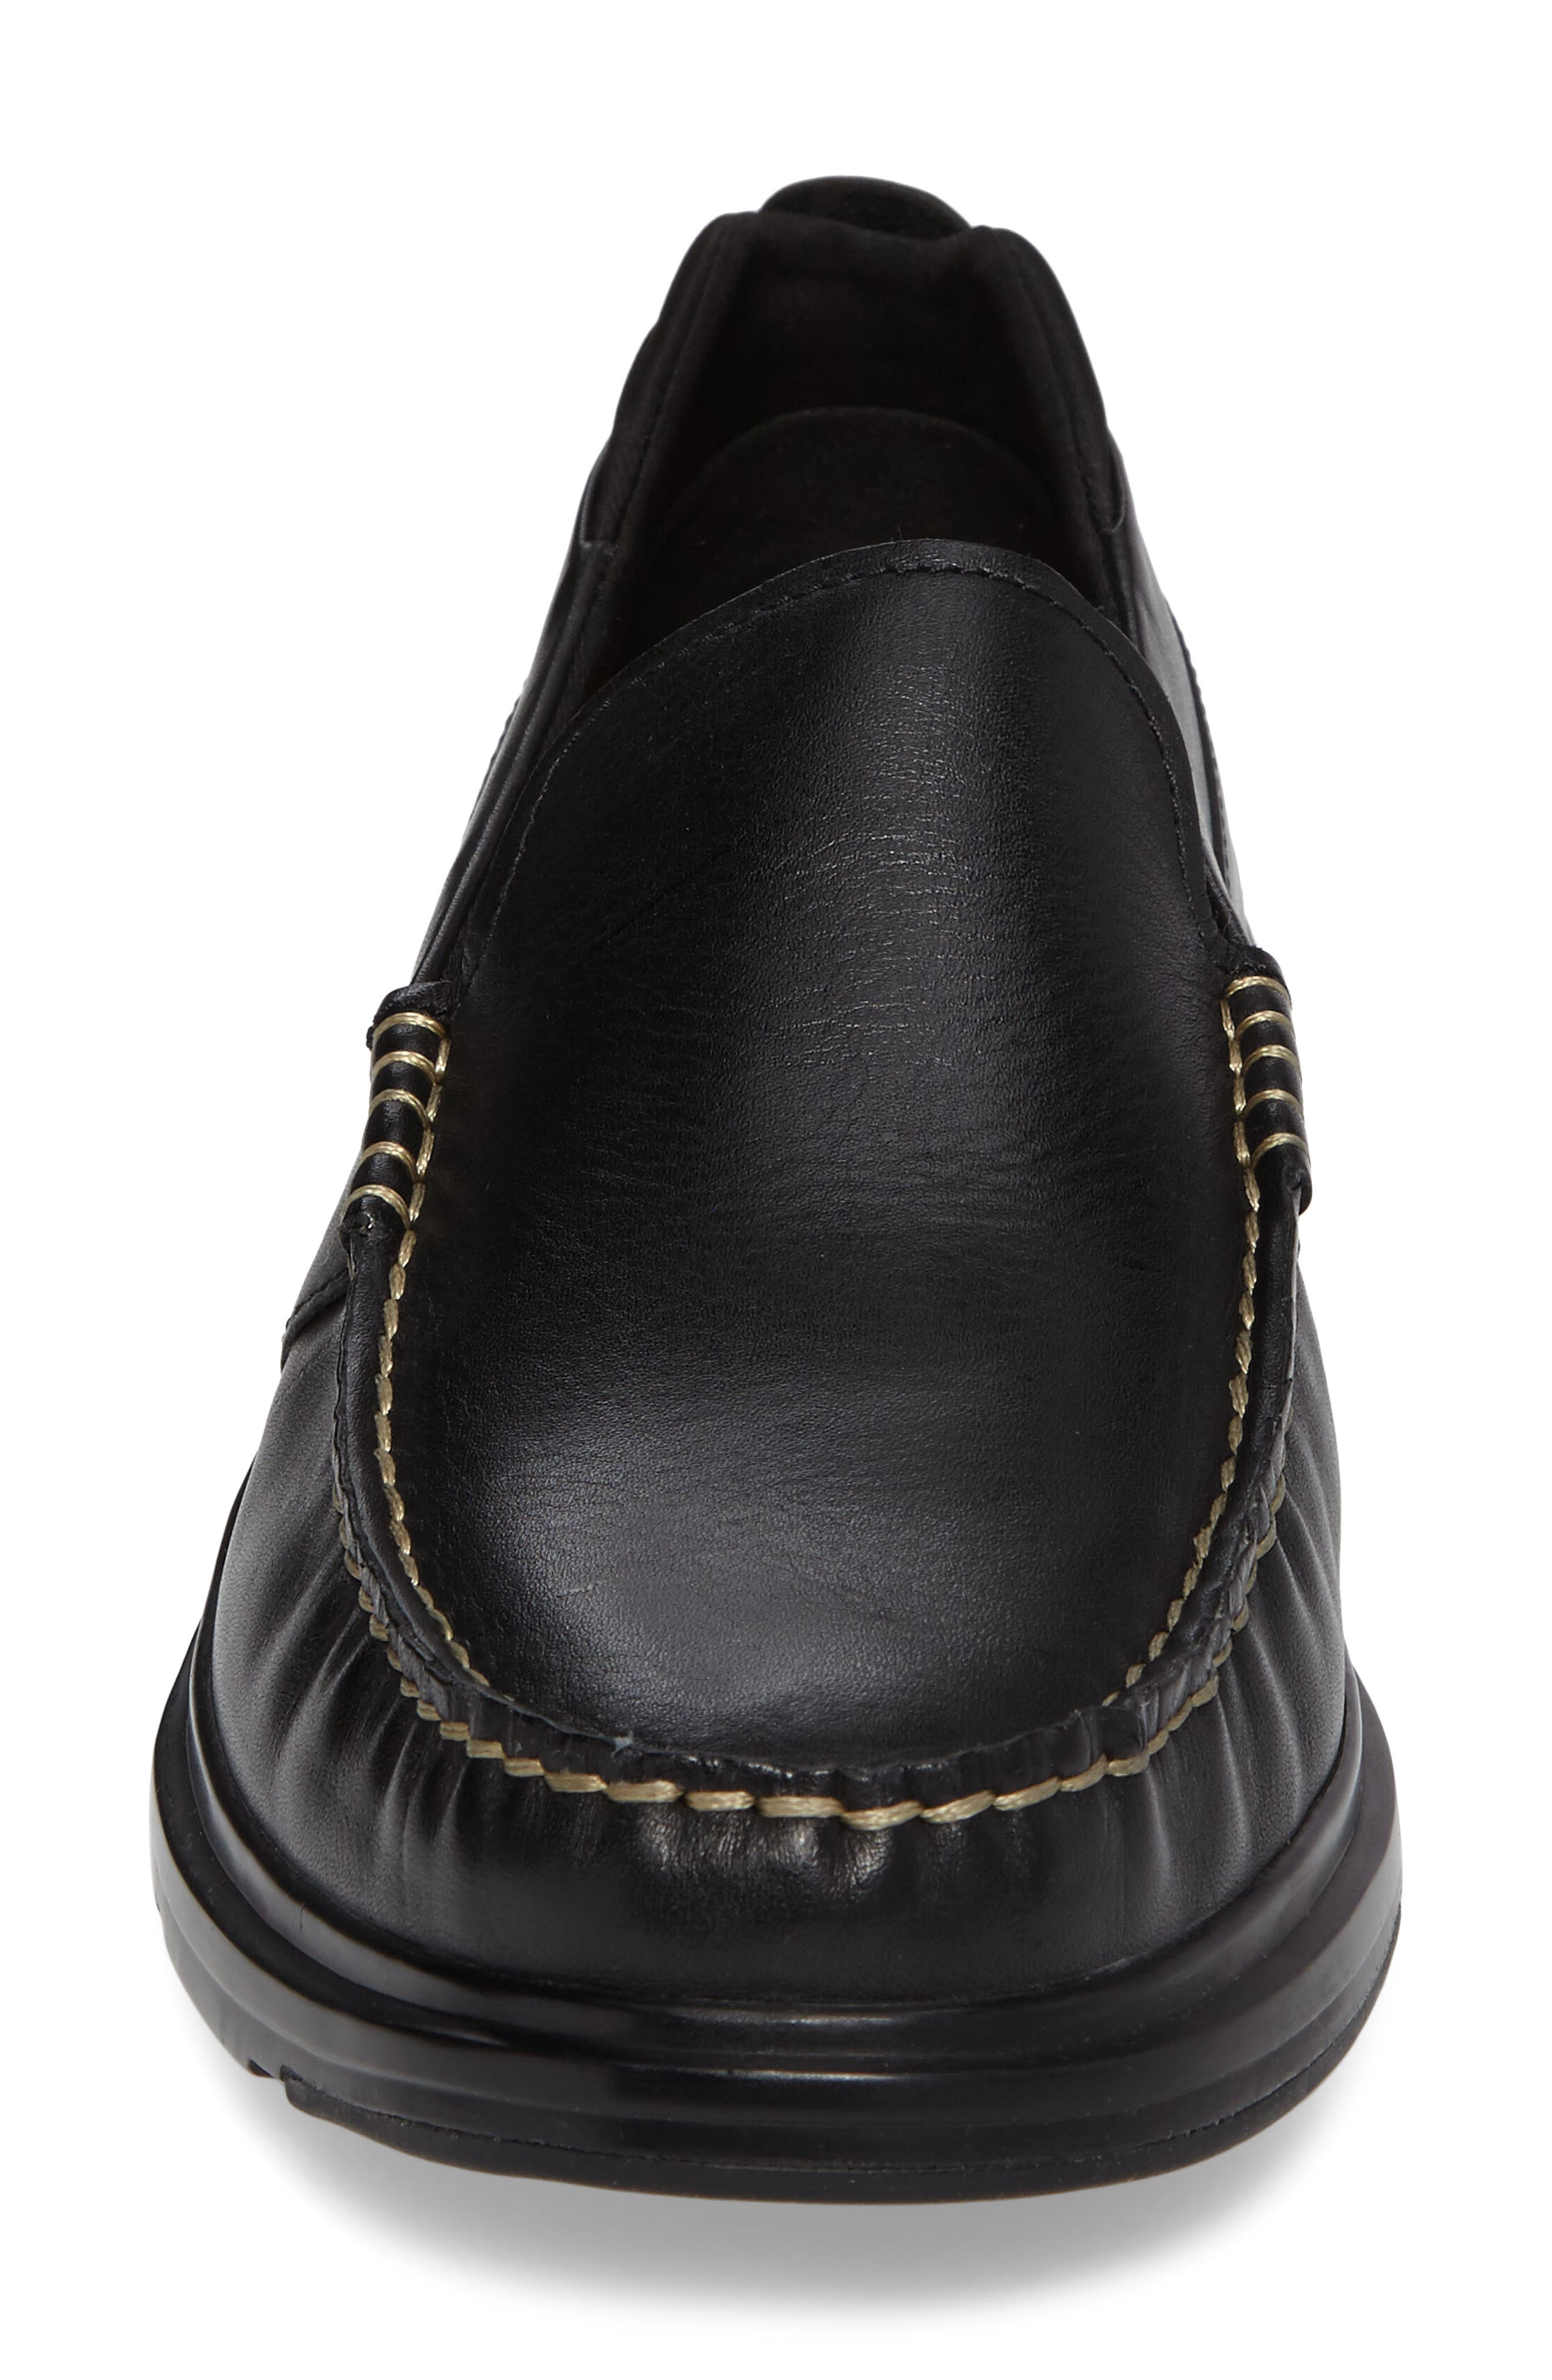 Bancroft Loafer,                             Alternate thumbnail 4, color,                             Black